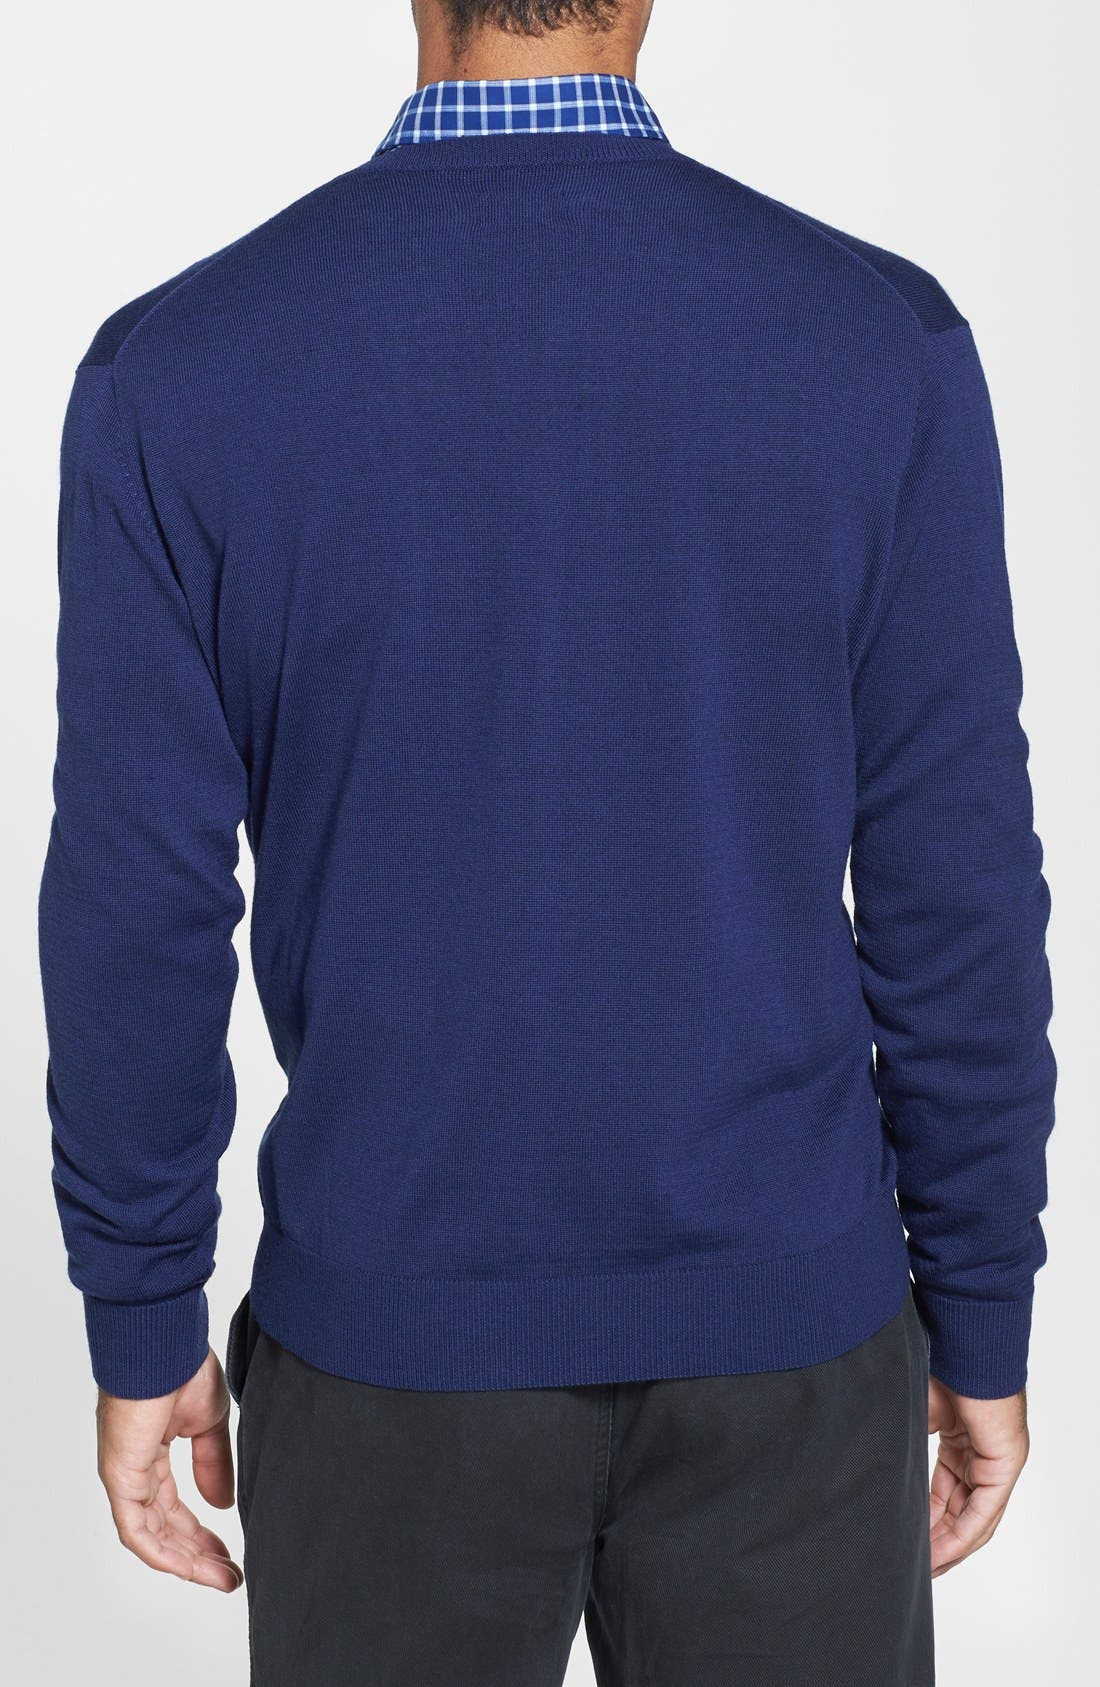 Douglas V-Neck Sweater,                             Alternate thumbnail 2, color,                             Liberty Navy